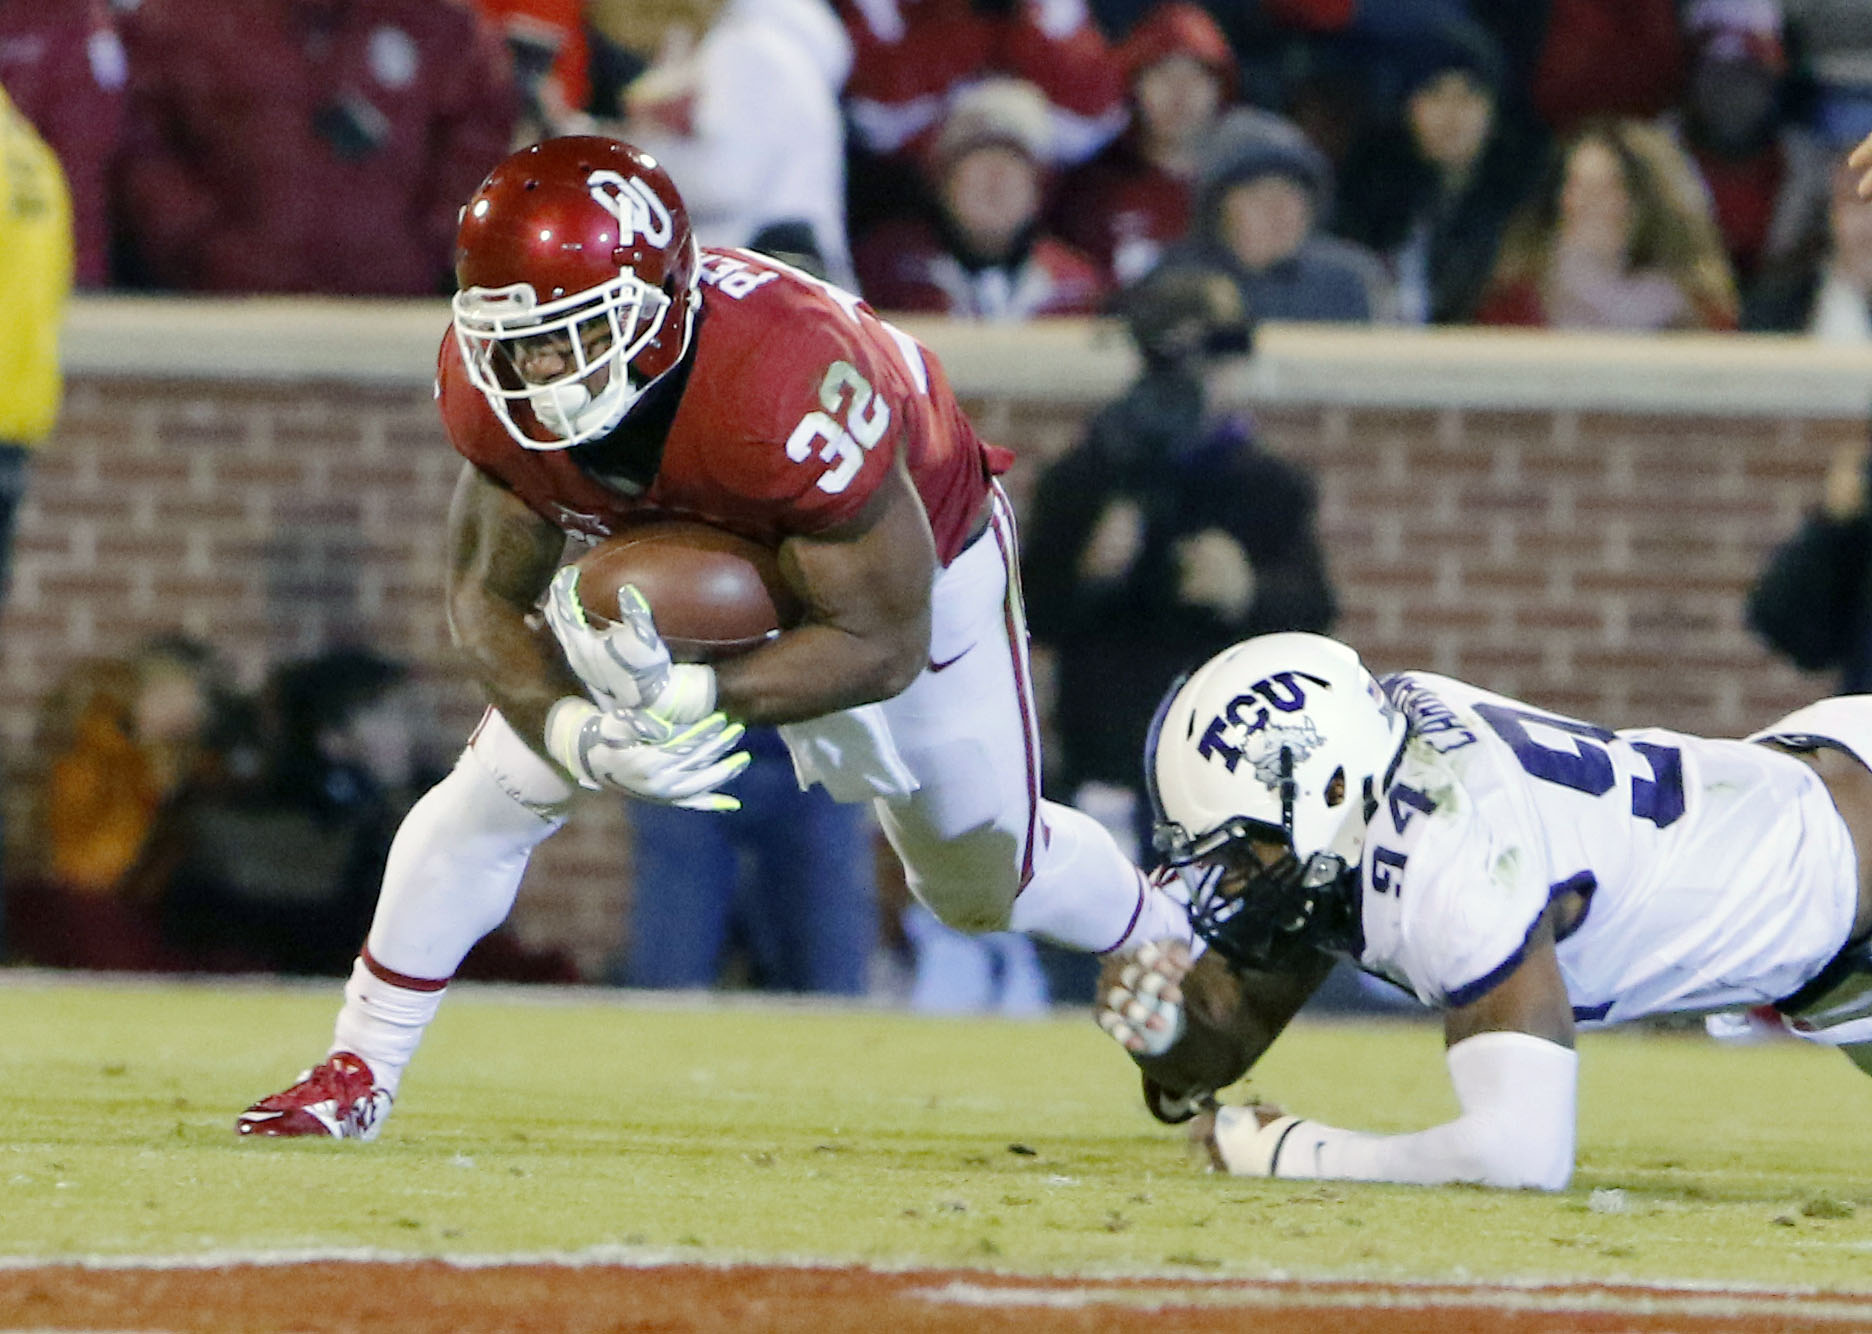 Oklahoma running back Samaje Perine (32) escapes a tackle by TCU defensive end Josh Carraway (94) during the first quarter of an NCAA college football game in Norman, Okla., Saturday, Nov. 21, 2015. (AP Photo/Alonzo Adams)